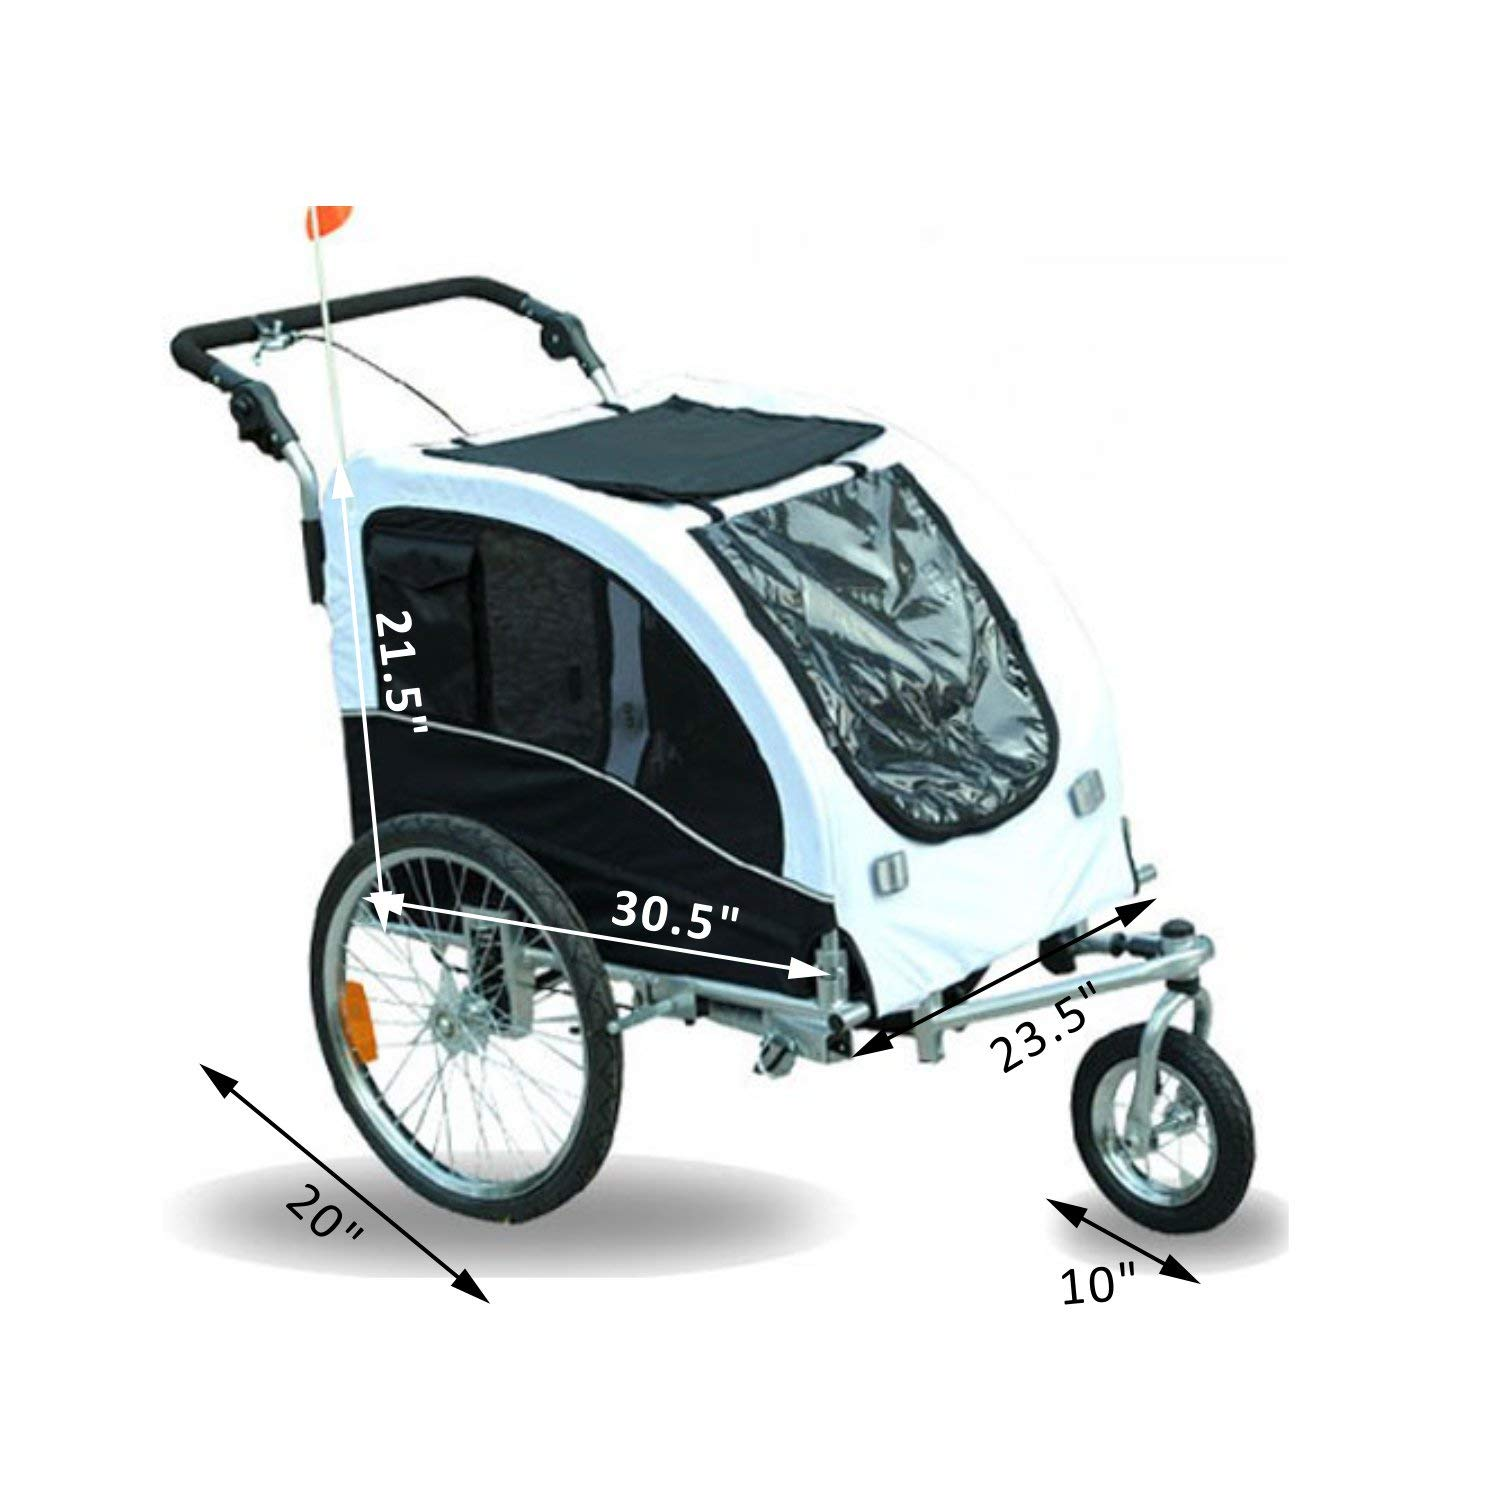 Godyluck 3 Entrances Design Dog Trailer for Bicycle with 360 Degrees Swivel Wheel, Max Load 88 LBS | White and Black